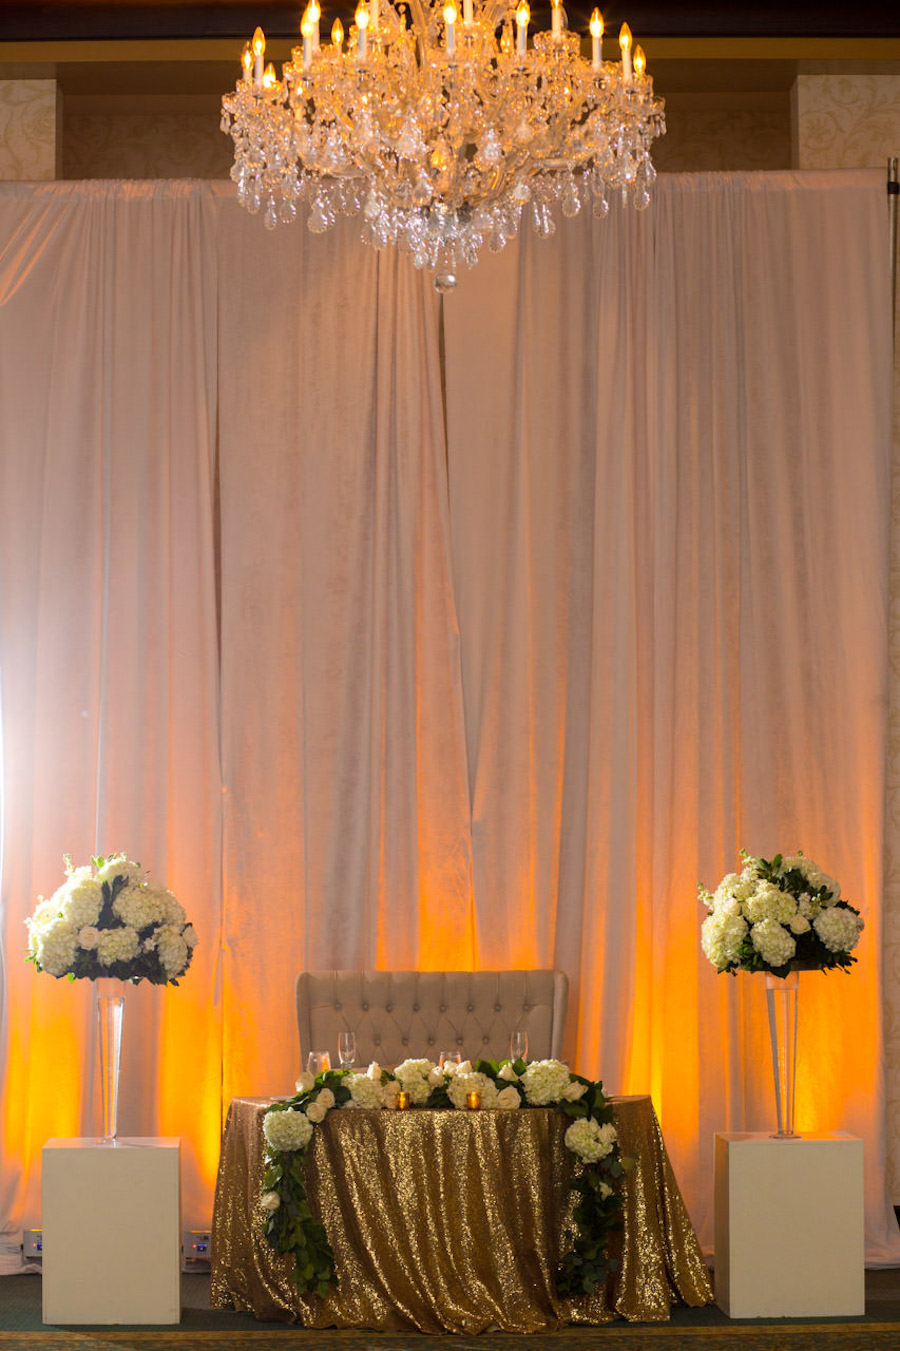 Gold Wedding Reception with Sequined Linen and Tall Ivory Floral Arrangement at Sweetheart Table | Tampa Bay Wedding Ballroom Venue The Palmetto Club